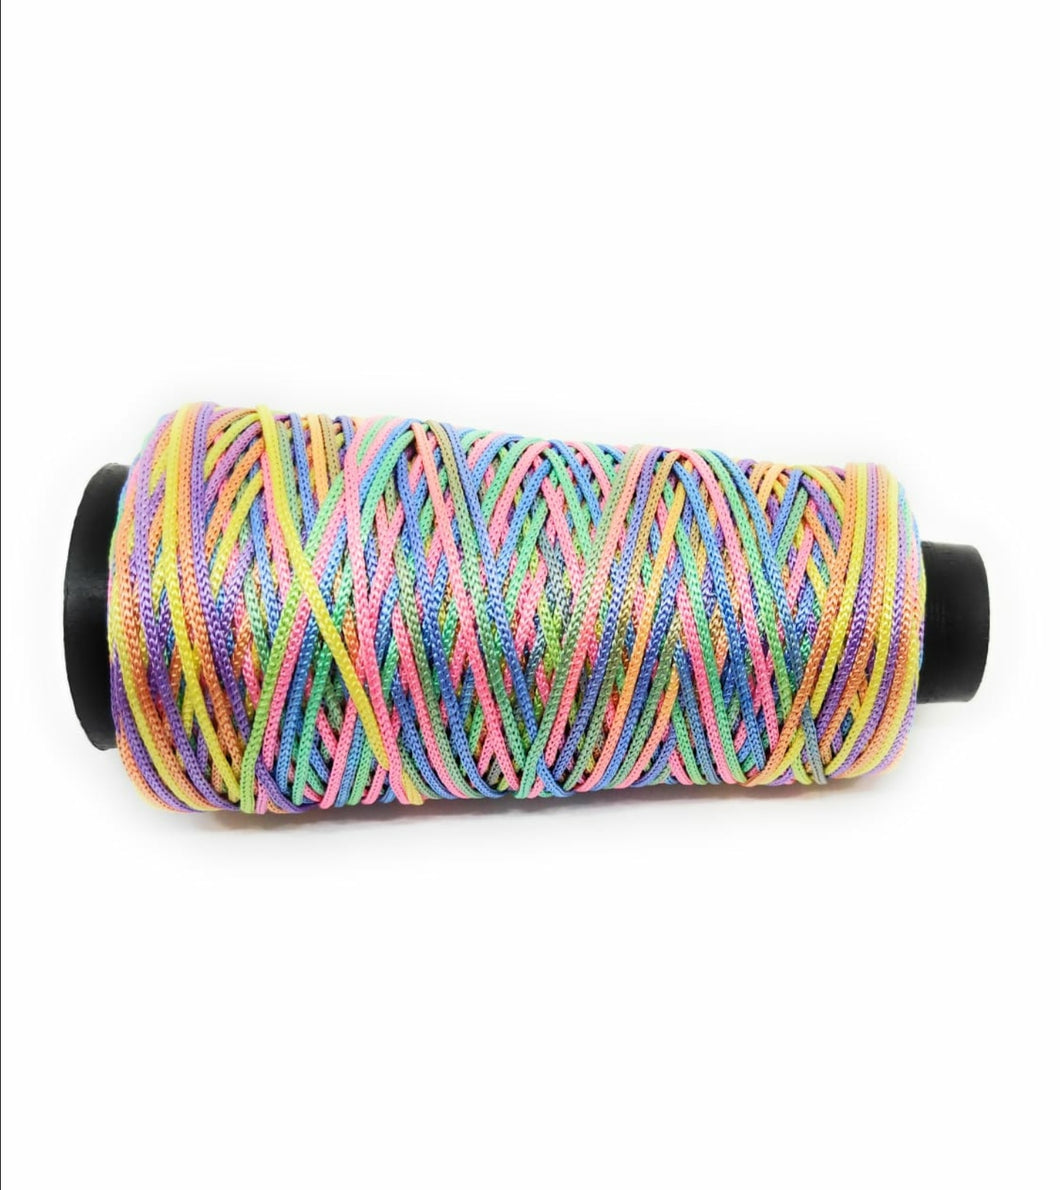 Pastel Multicolour Cone Thread for Weaving & Knitting - Approx 125 metres.